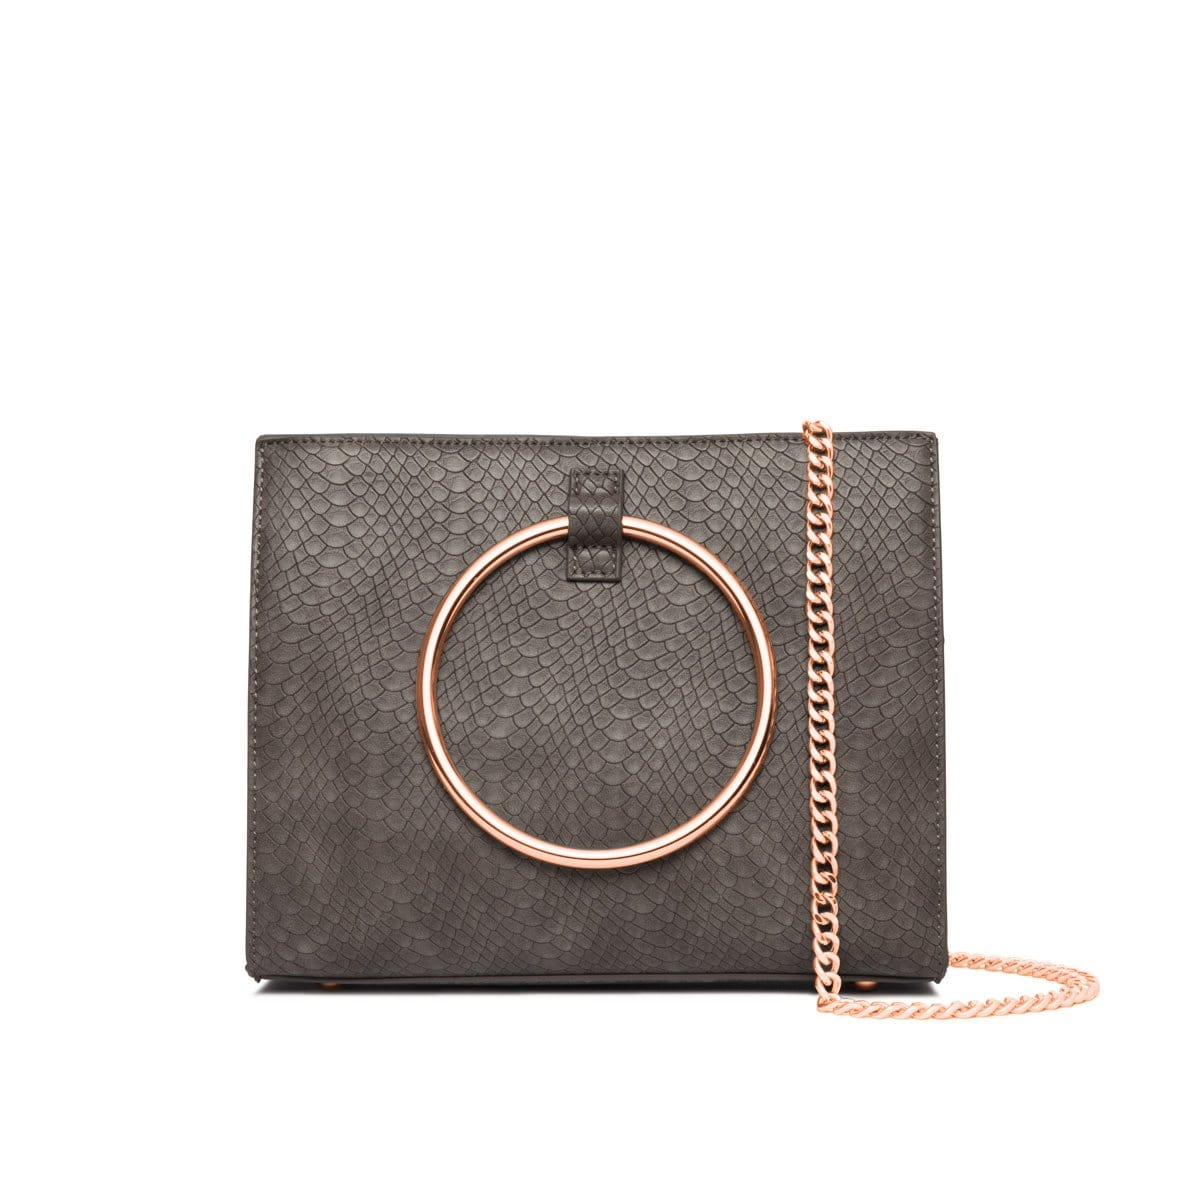 Frost Grey Moda Handbag Rose Gold